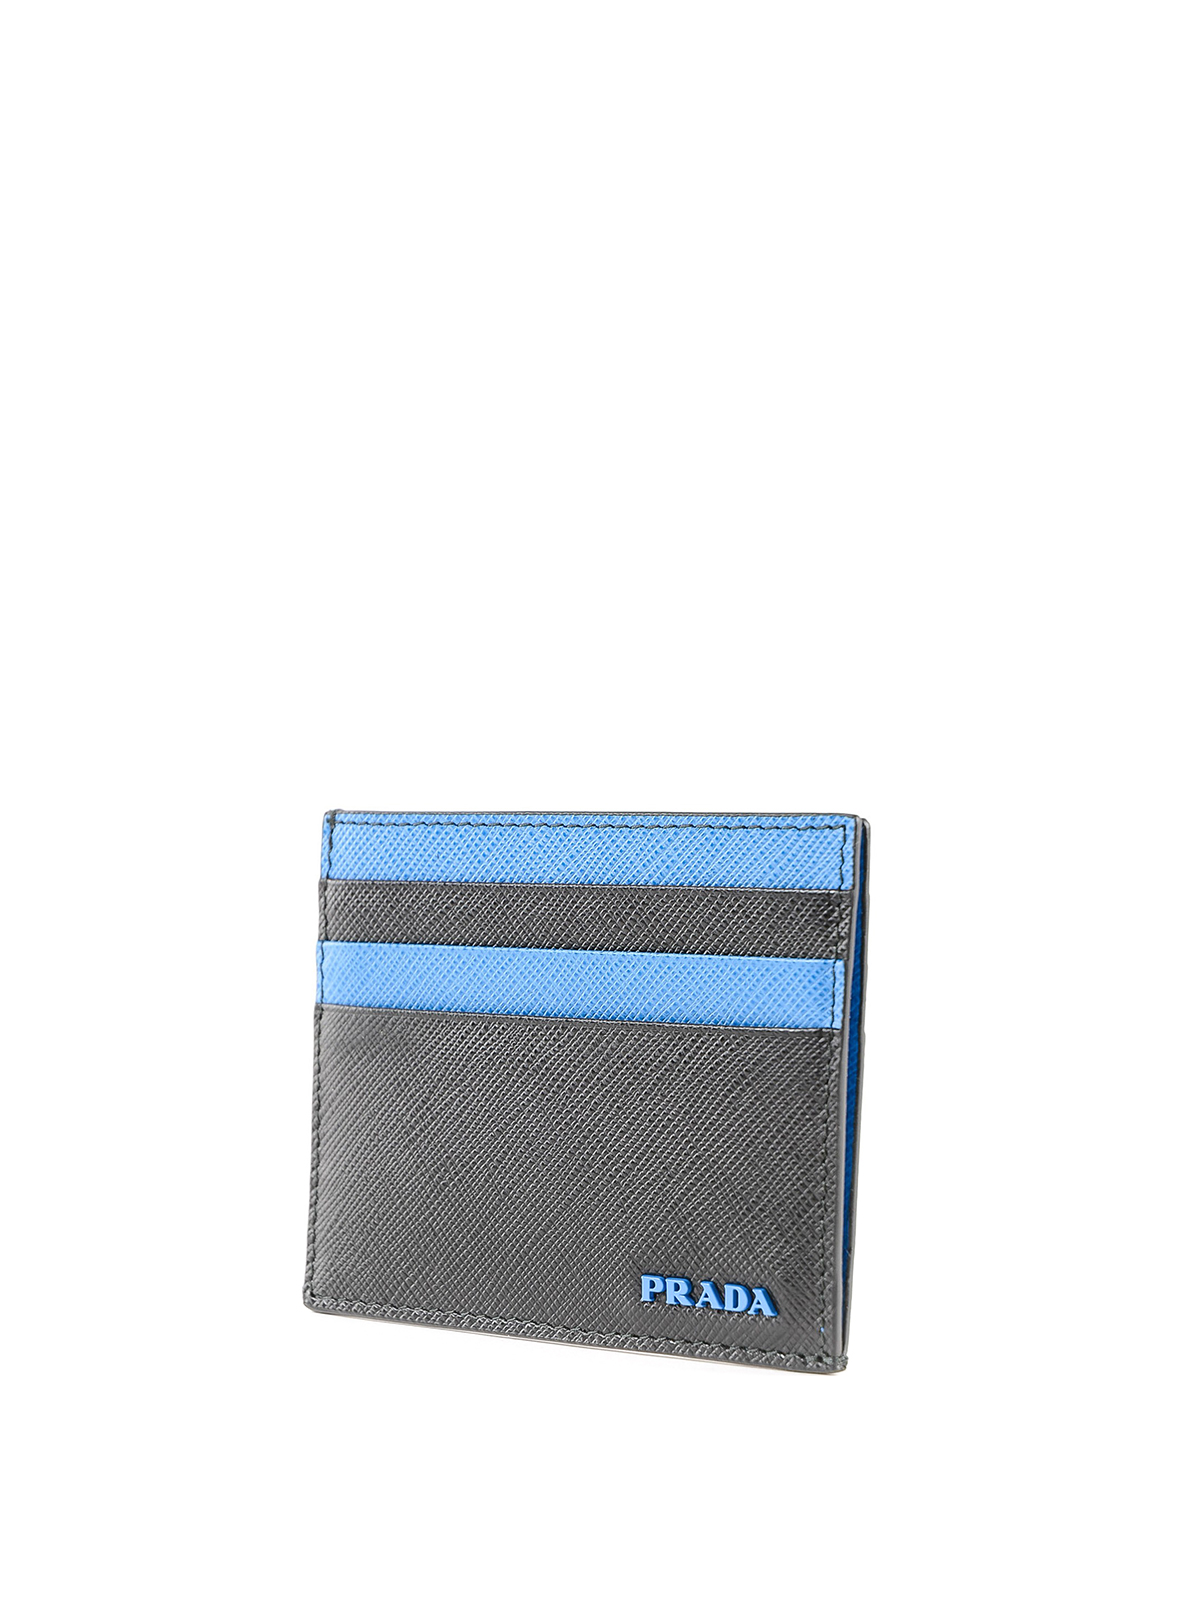 f51b50d11536 PRADA: wallets & purses online - Black and blue Saffiano leather card holder